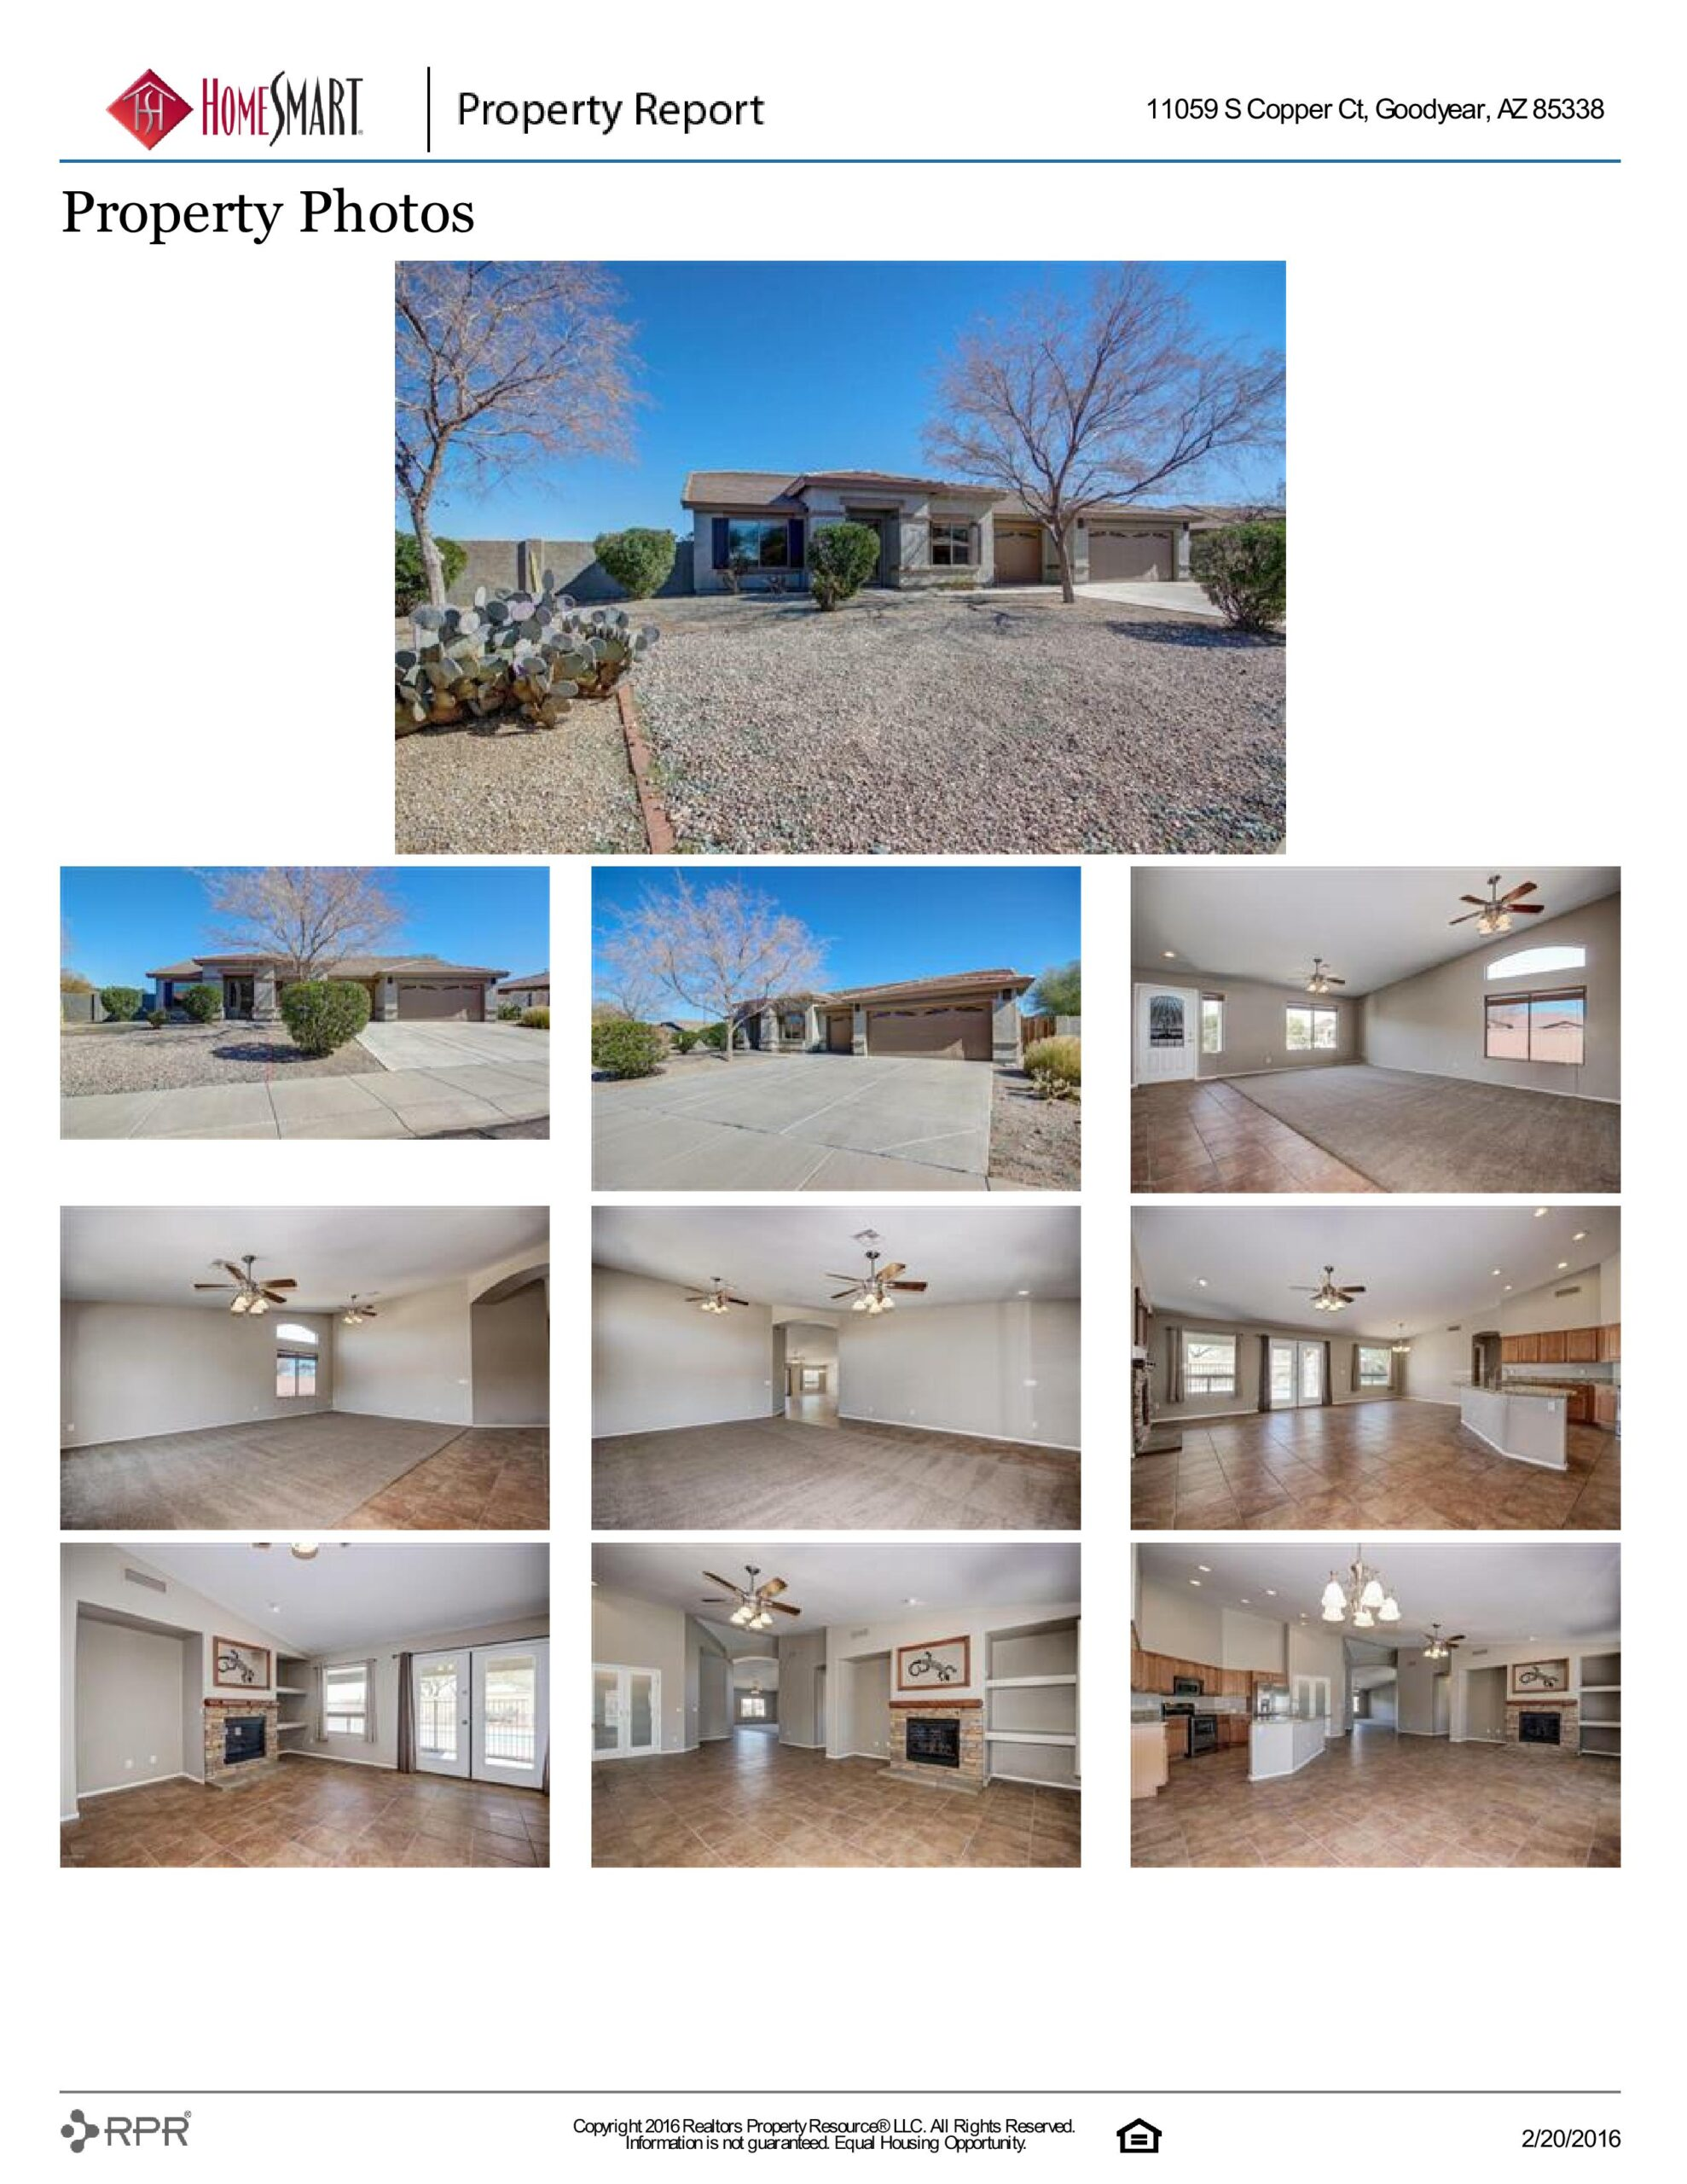 11059 S COPPER CT PROPERTY REPORT-page-006